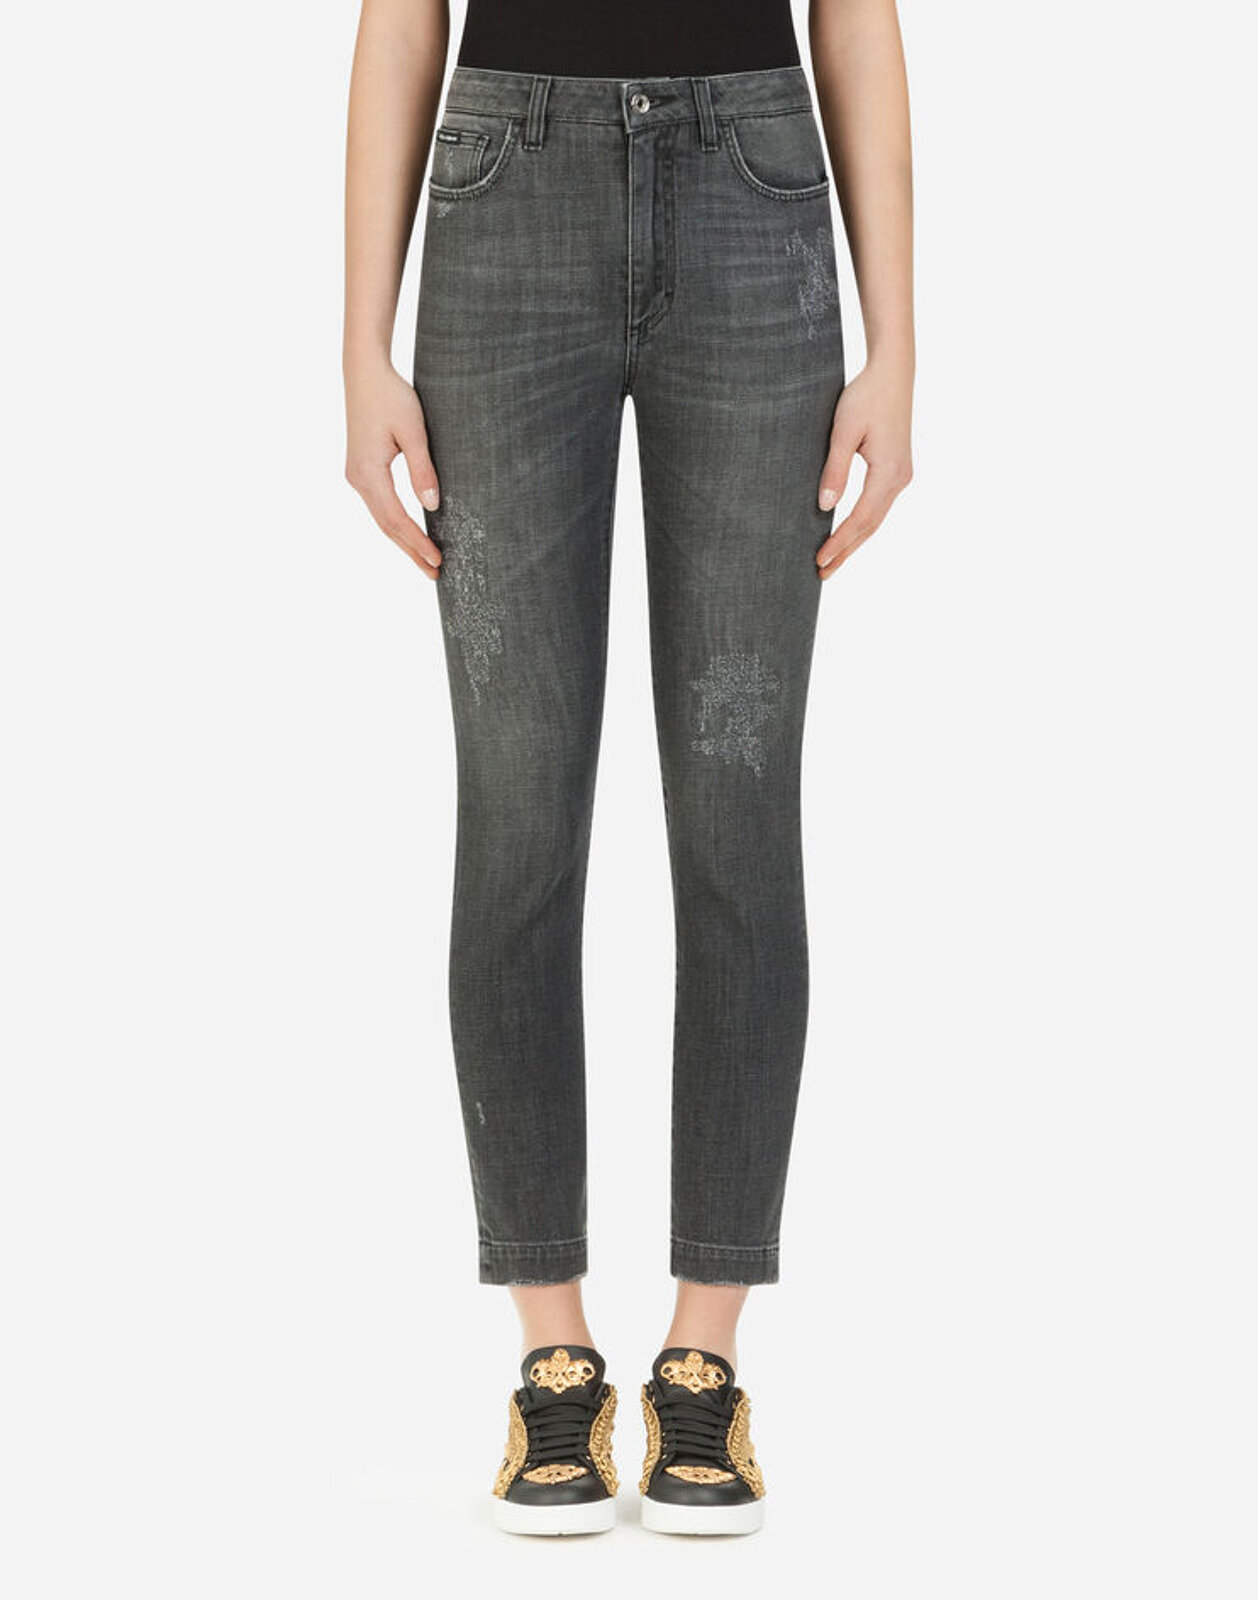 Jeans Fit Audrey In Denim Stretch - Dolce & Gabbana